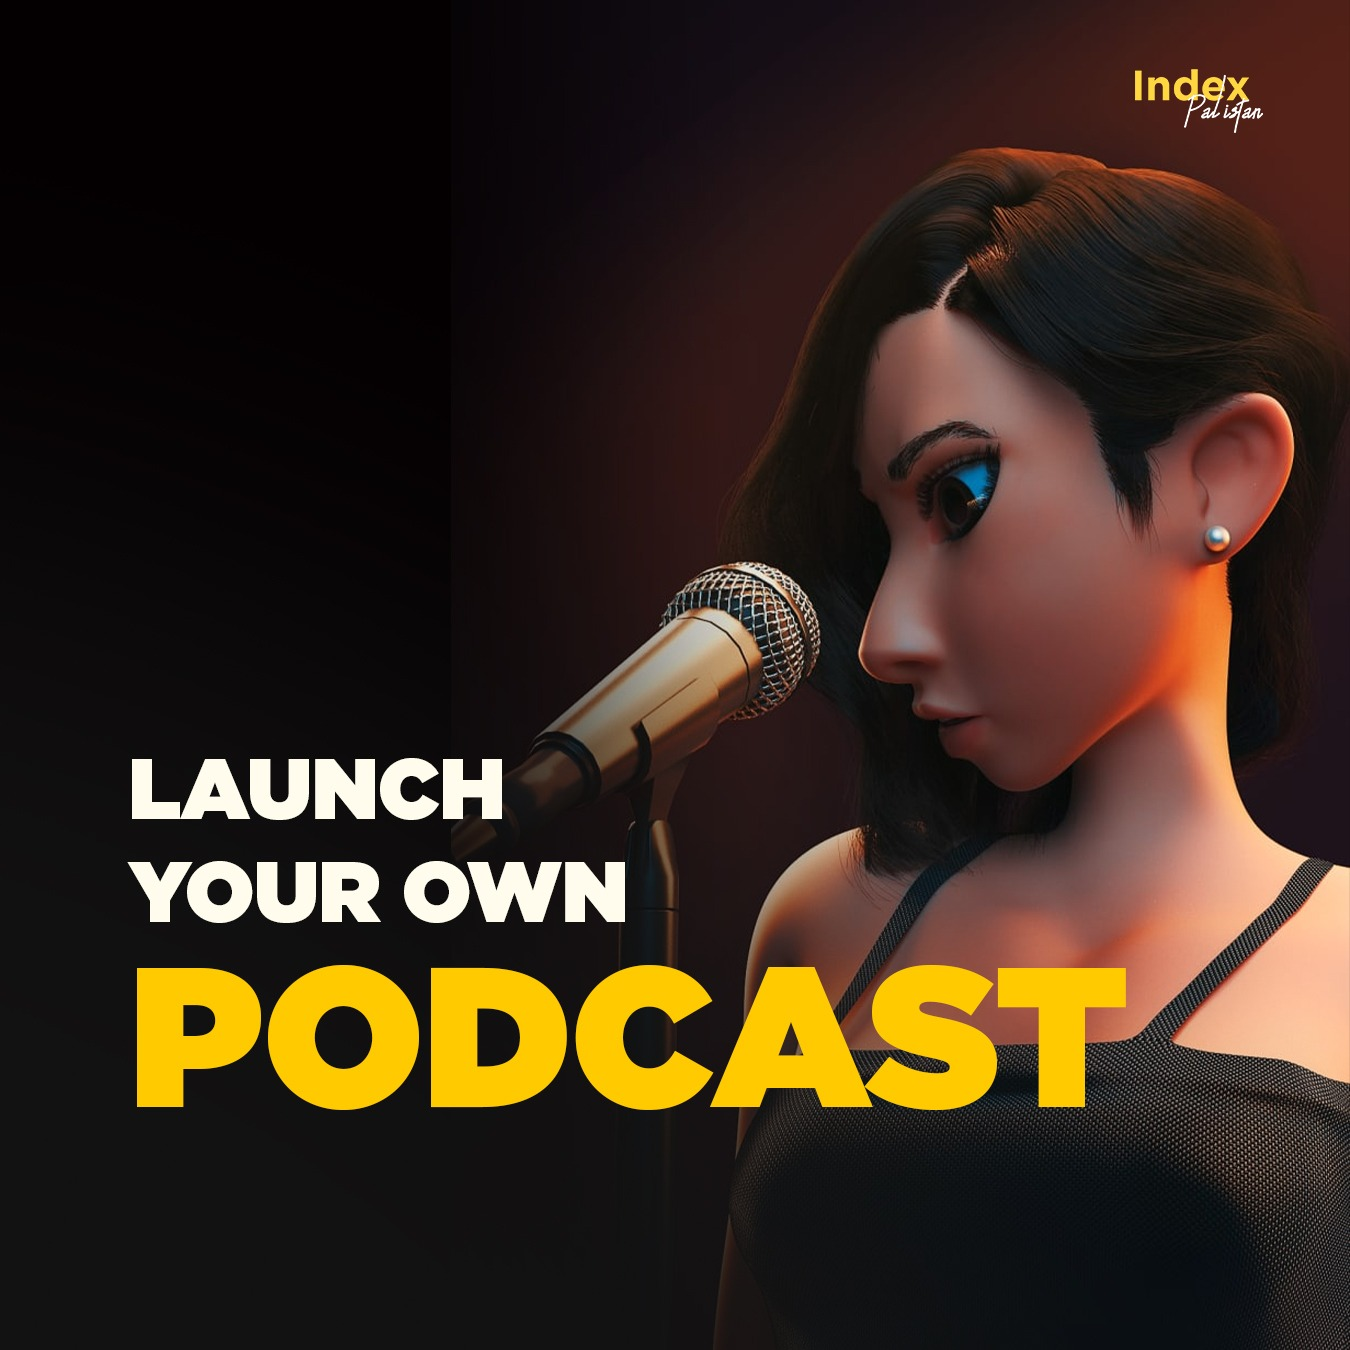 Podcast - Create and Launch your own from Pakistan - Complete Guide